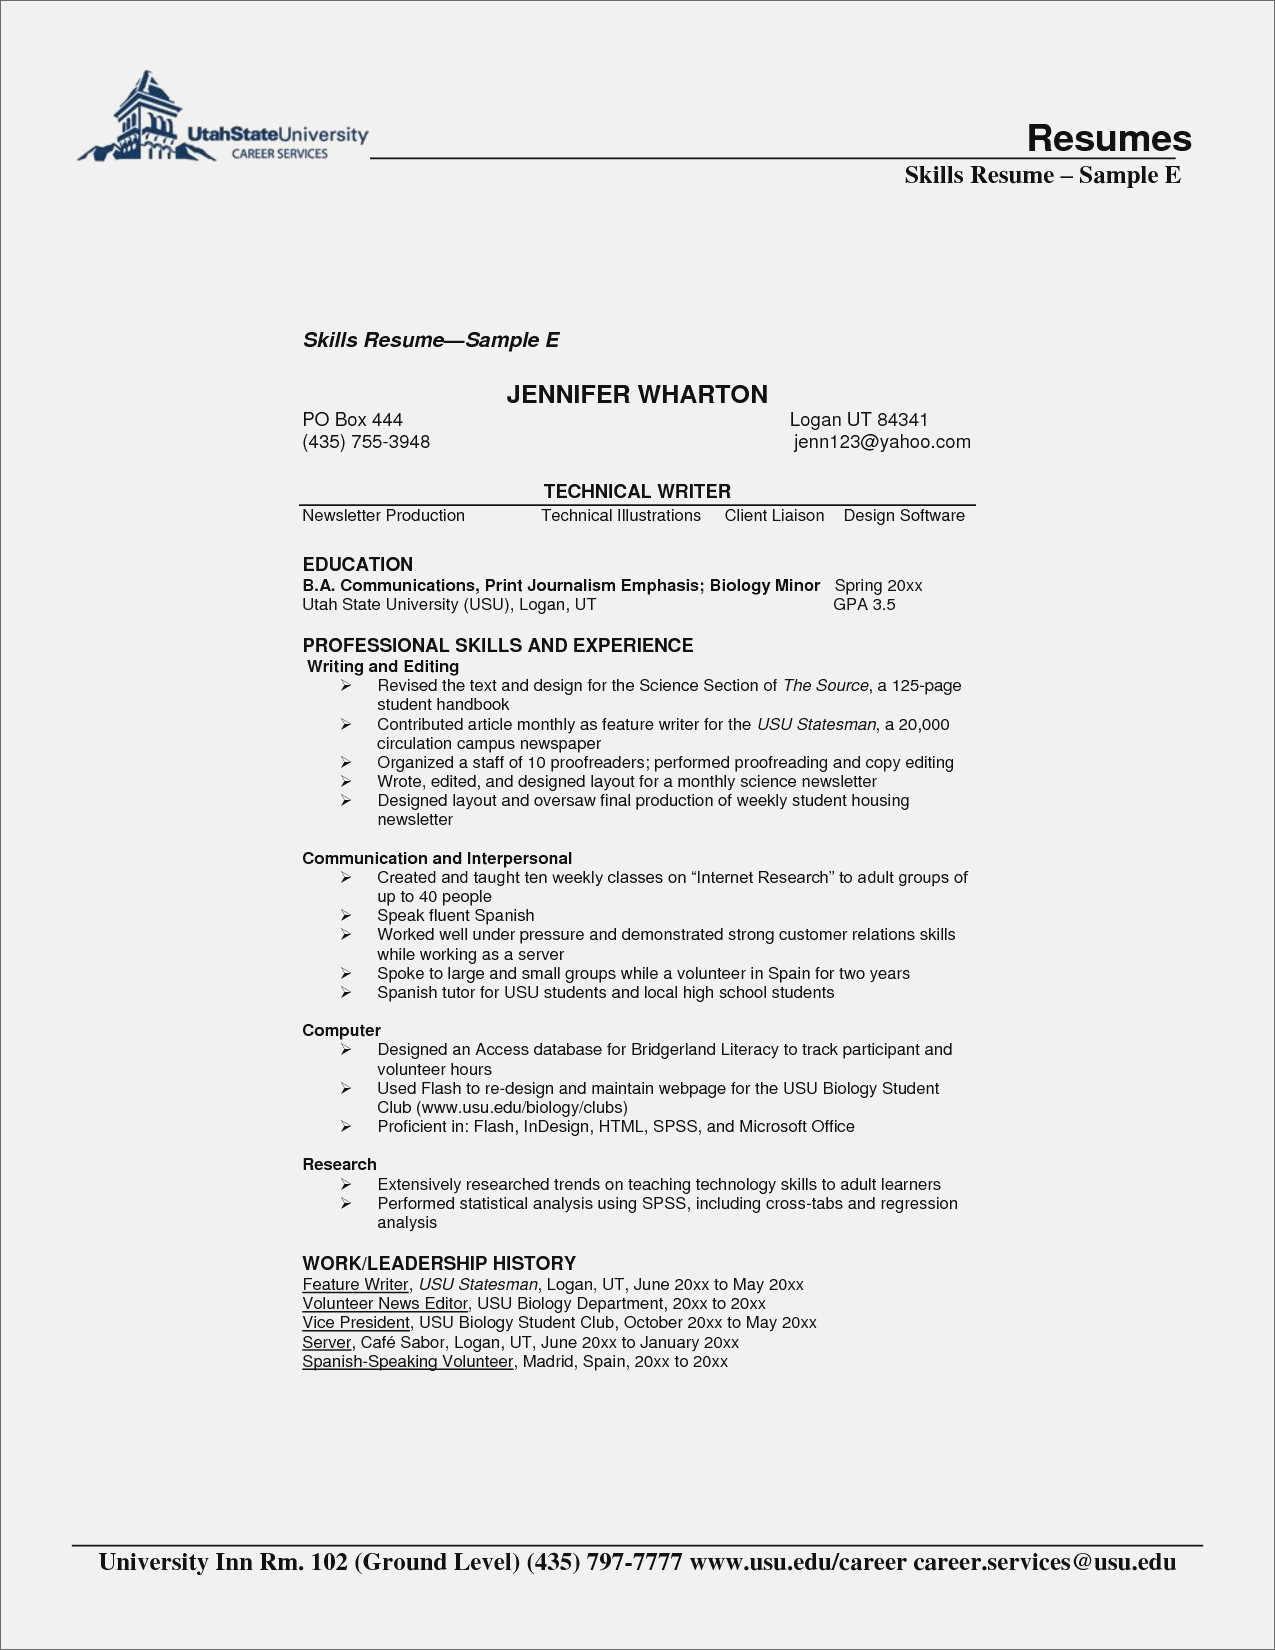 Research Resume Template - Cheap Resumes Fresh Puter Skills Example Unique Examples Resumes